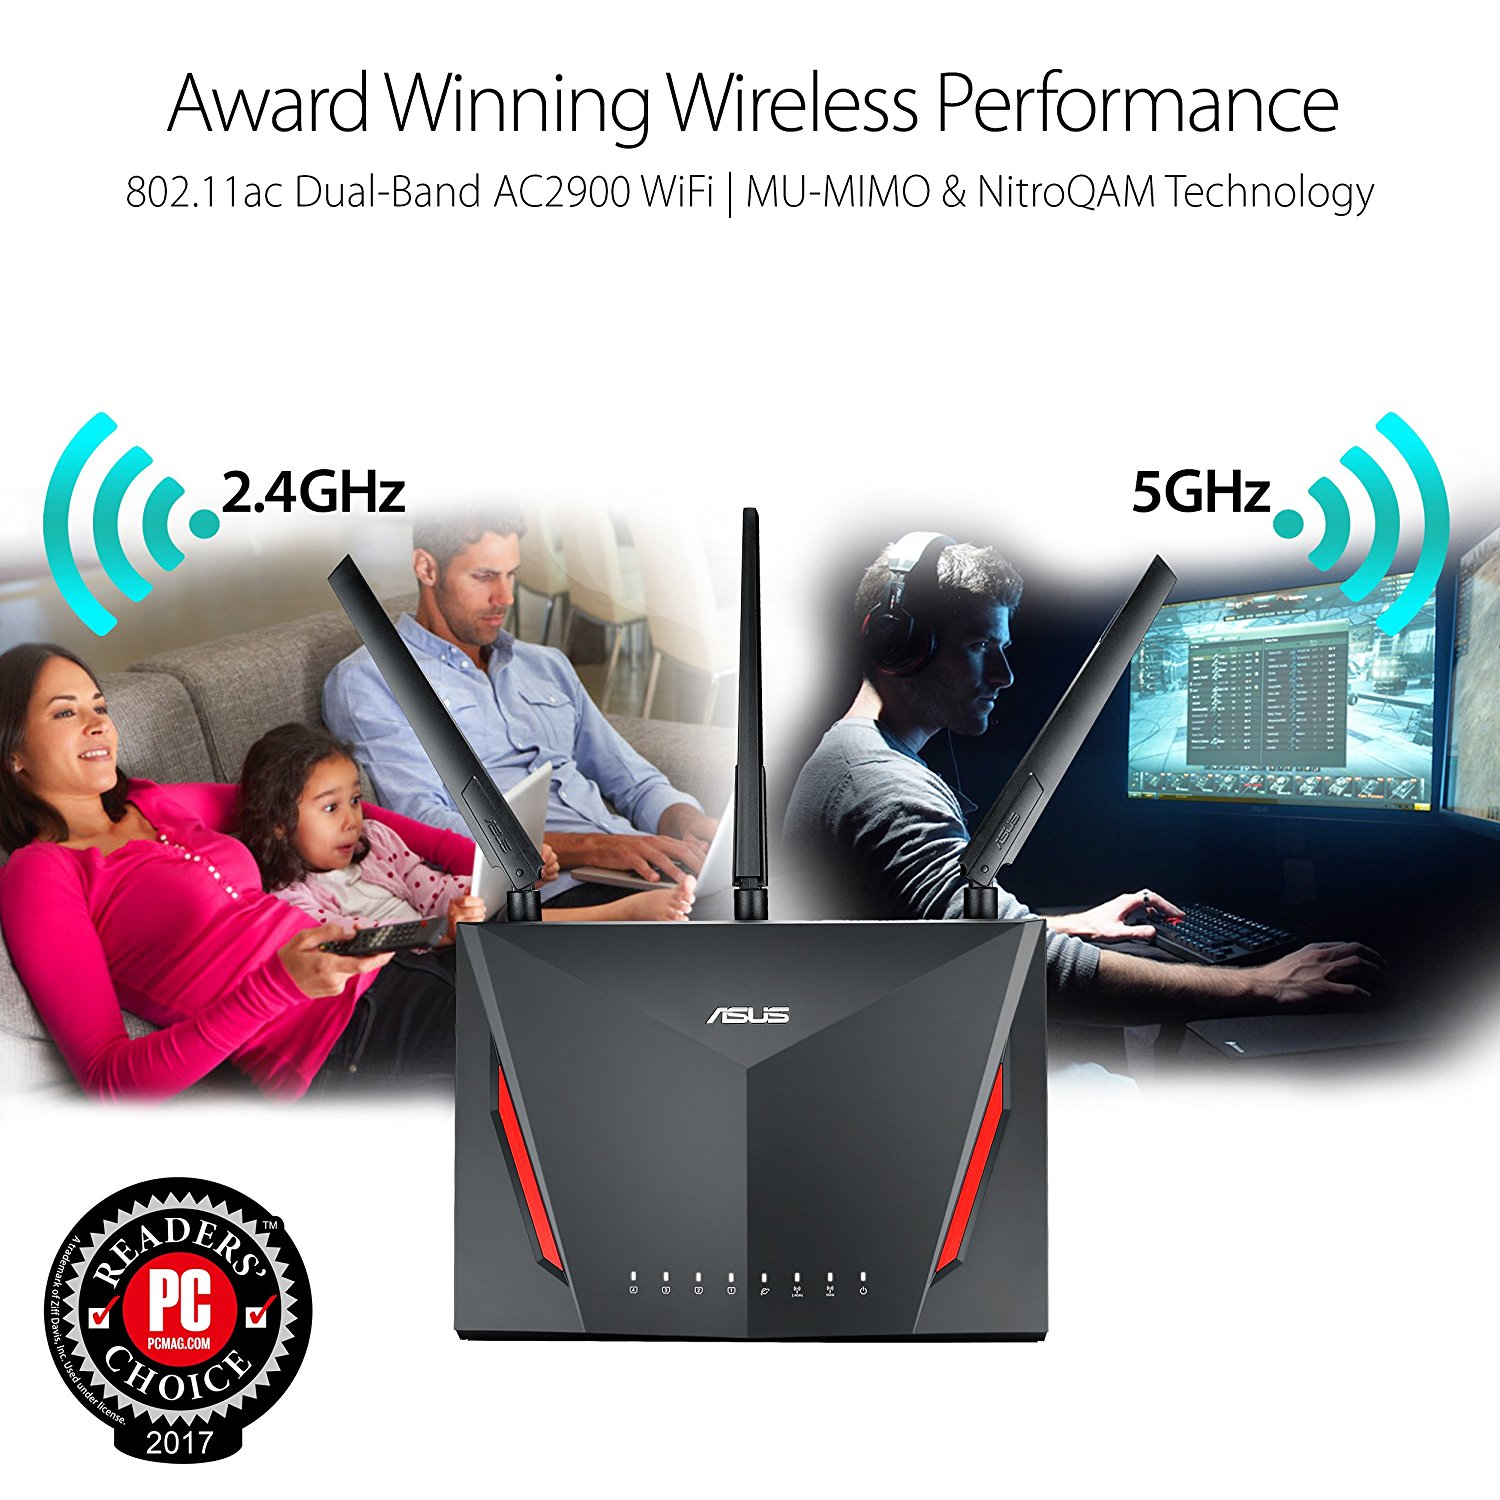 ASUS RT-AC86U (Gaming Router) Wifi AC2900 2 băng tần, AiMesh 360 WIFI Mesh, WTFast, AiProtection, chipset Broadcom USB 3.0 17